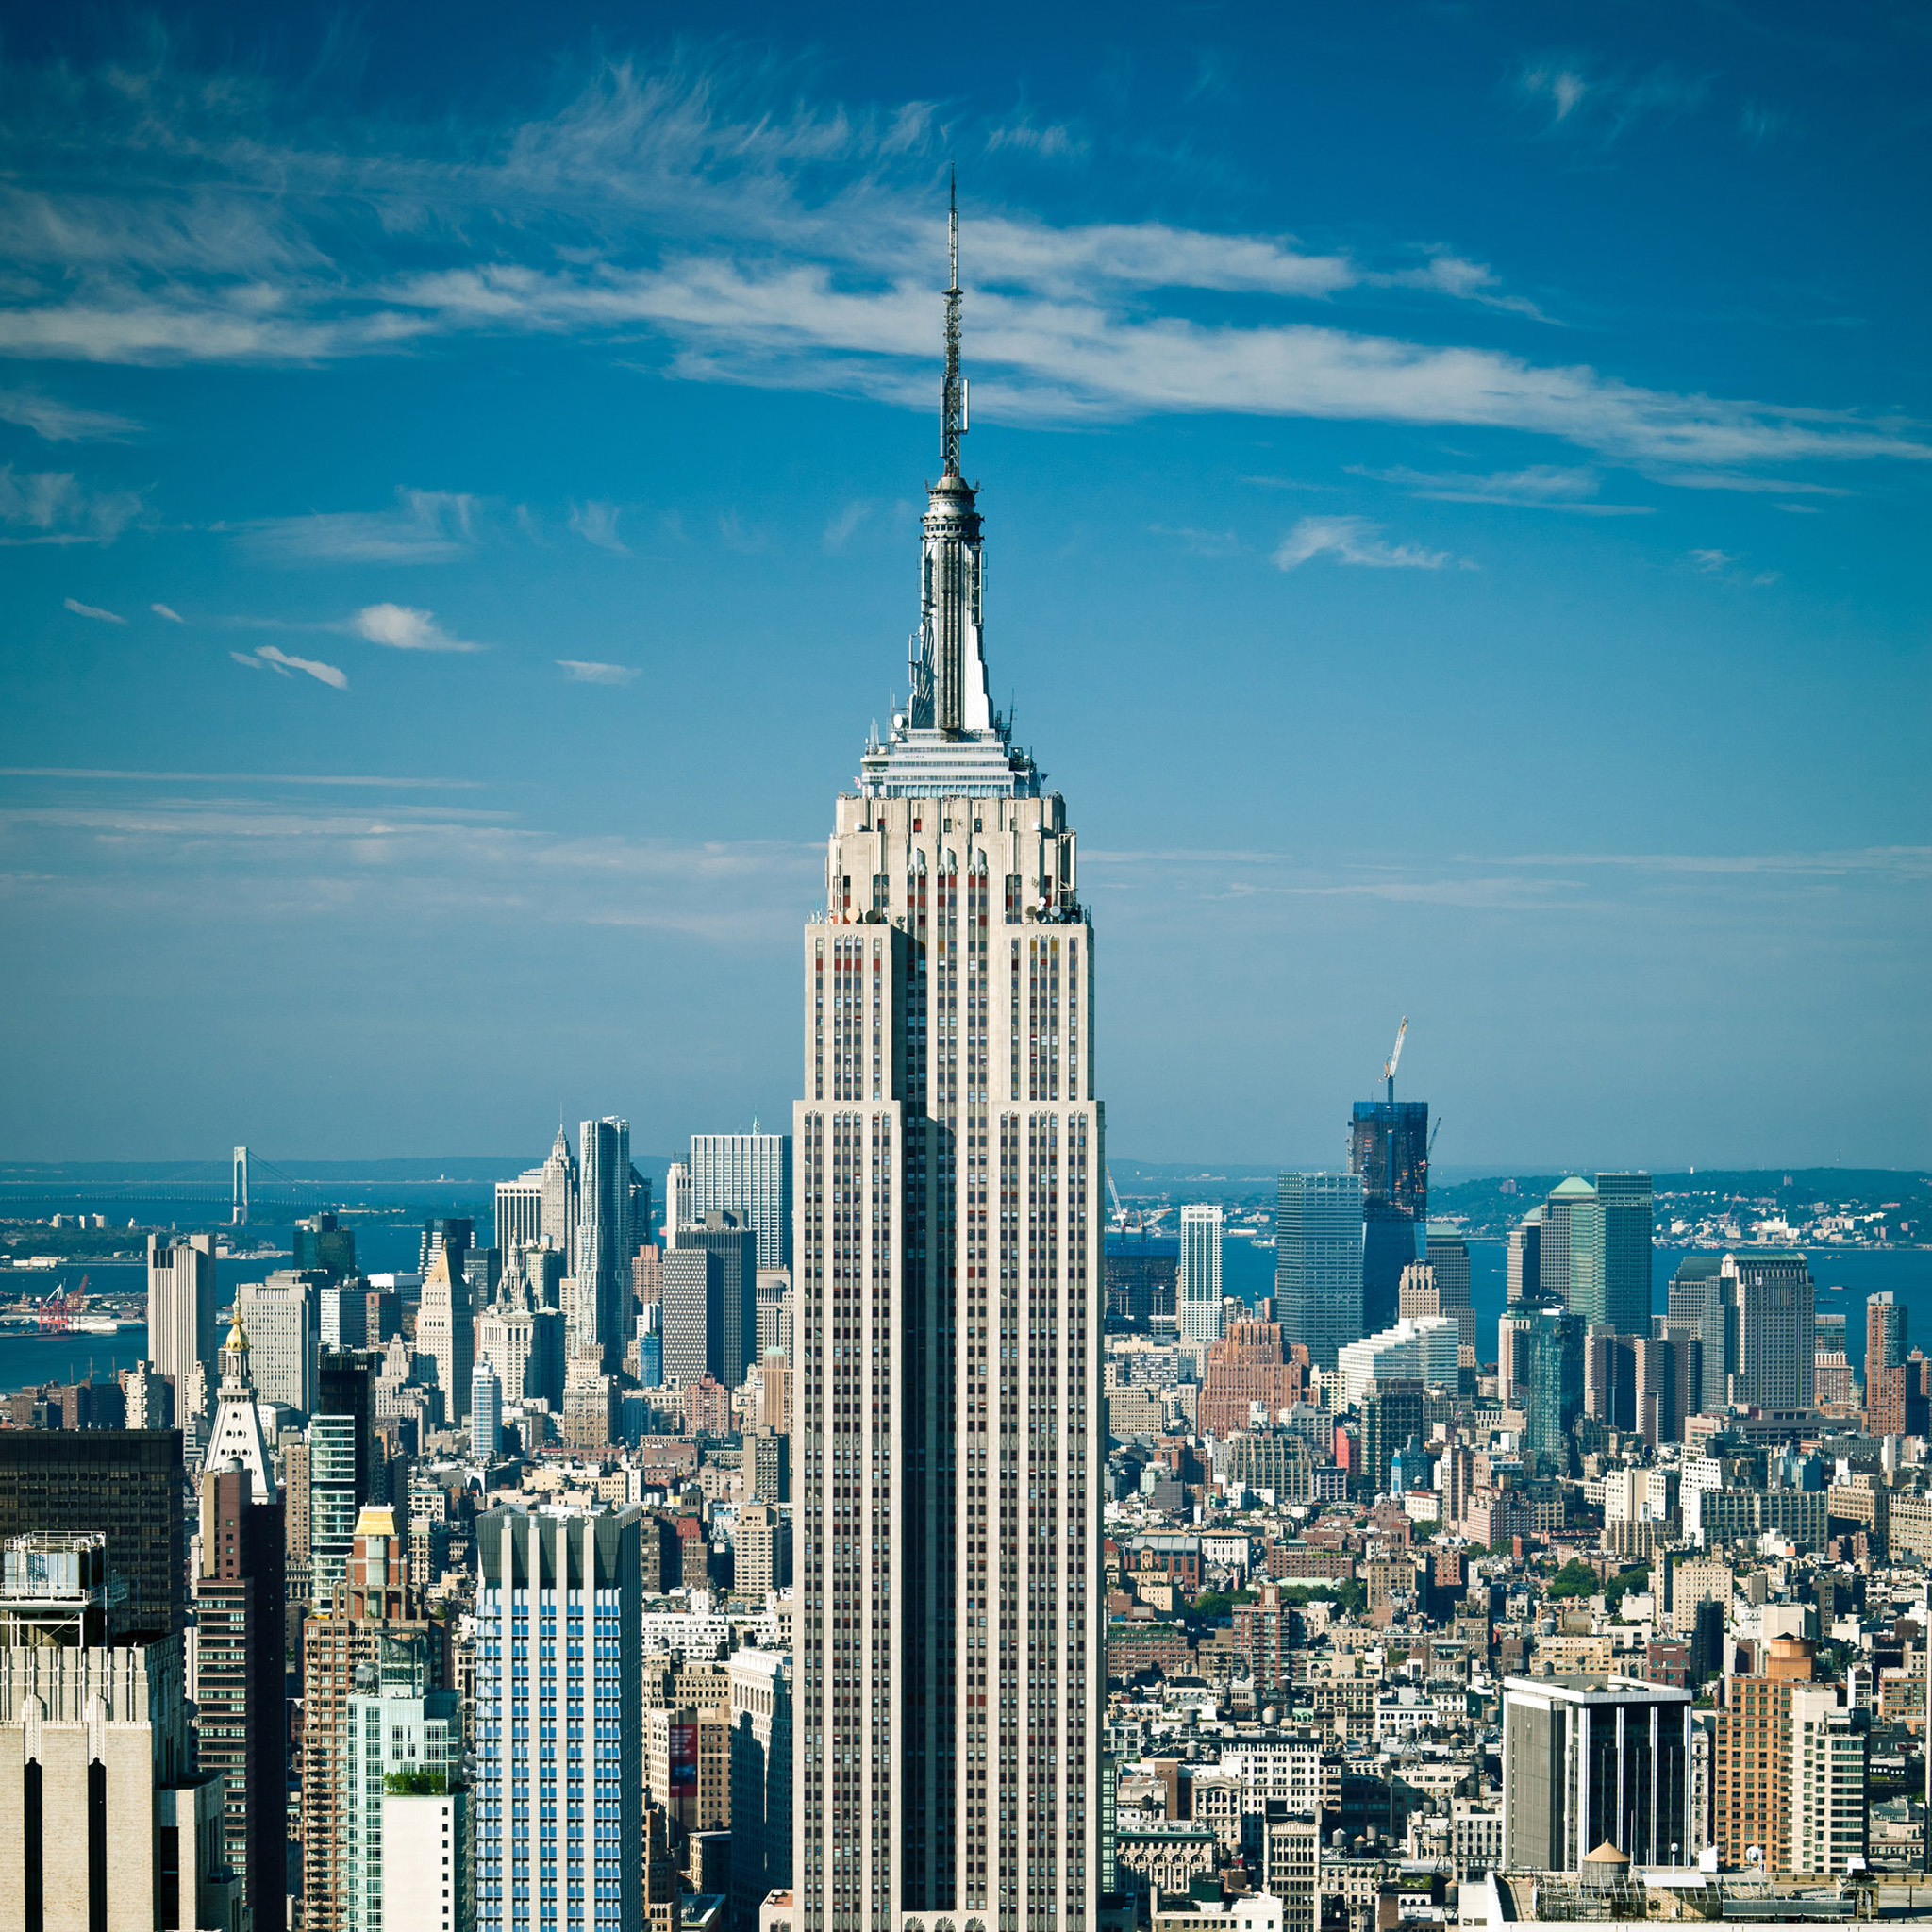 Wallpaper Iphone New York: Empire State Building Wallpapers